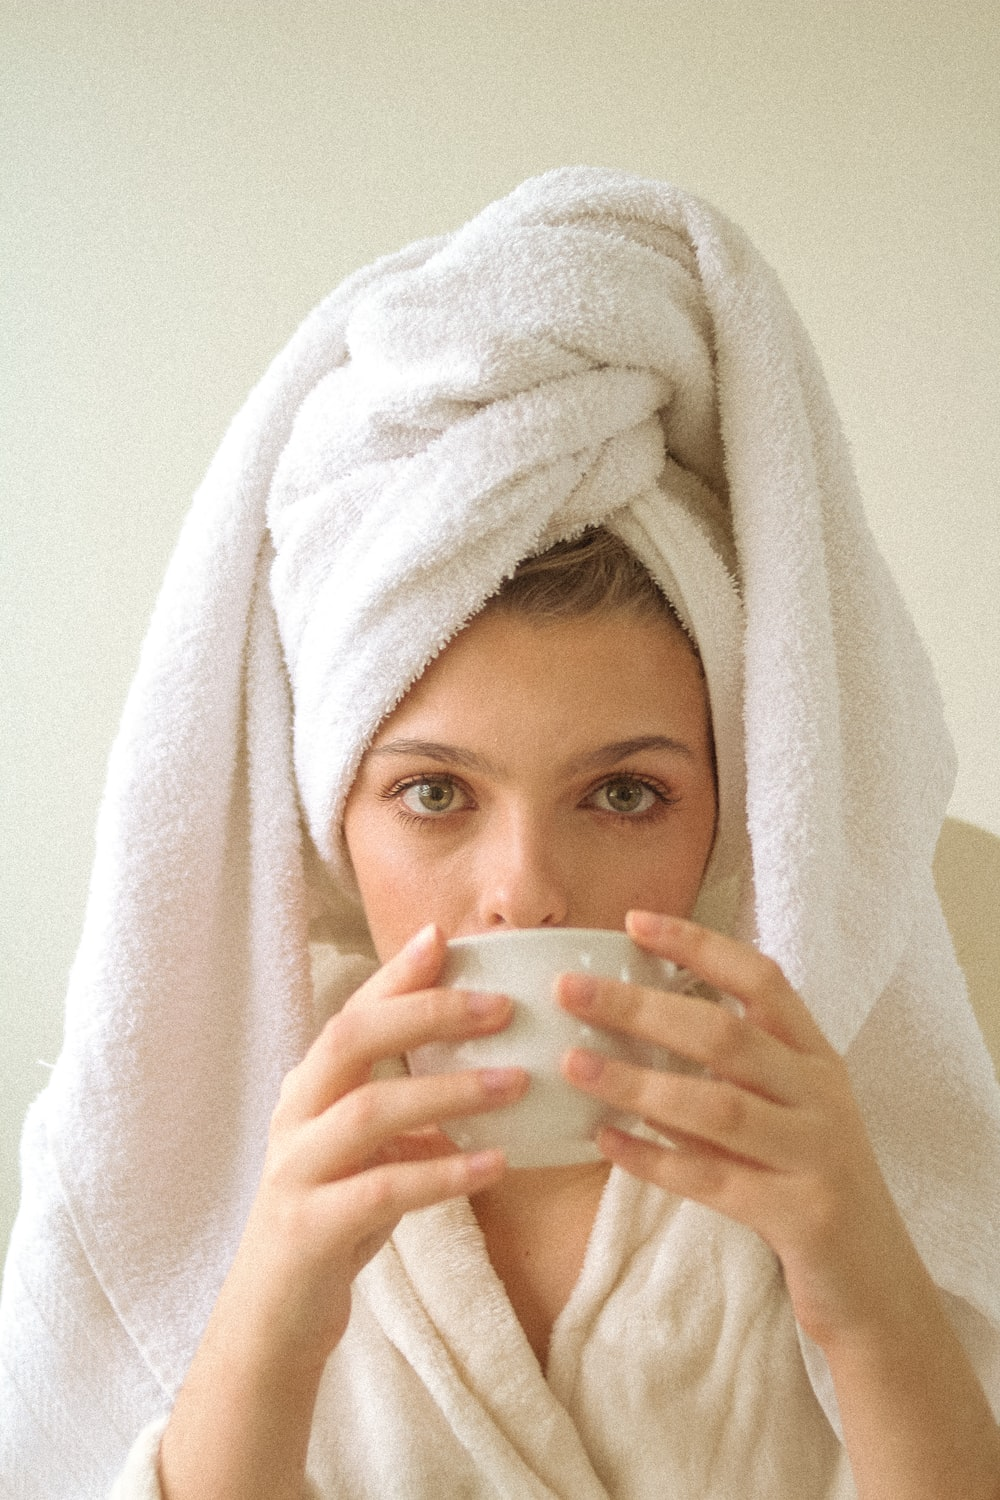 woman covering her body with white towel